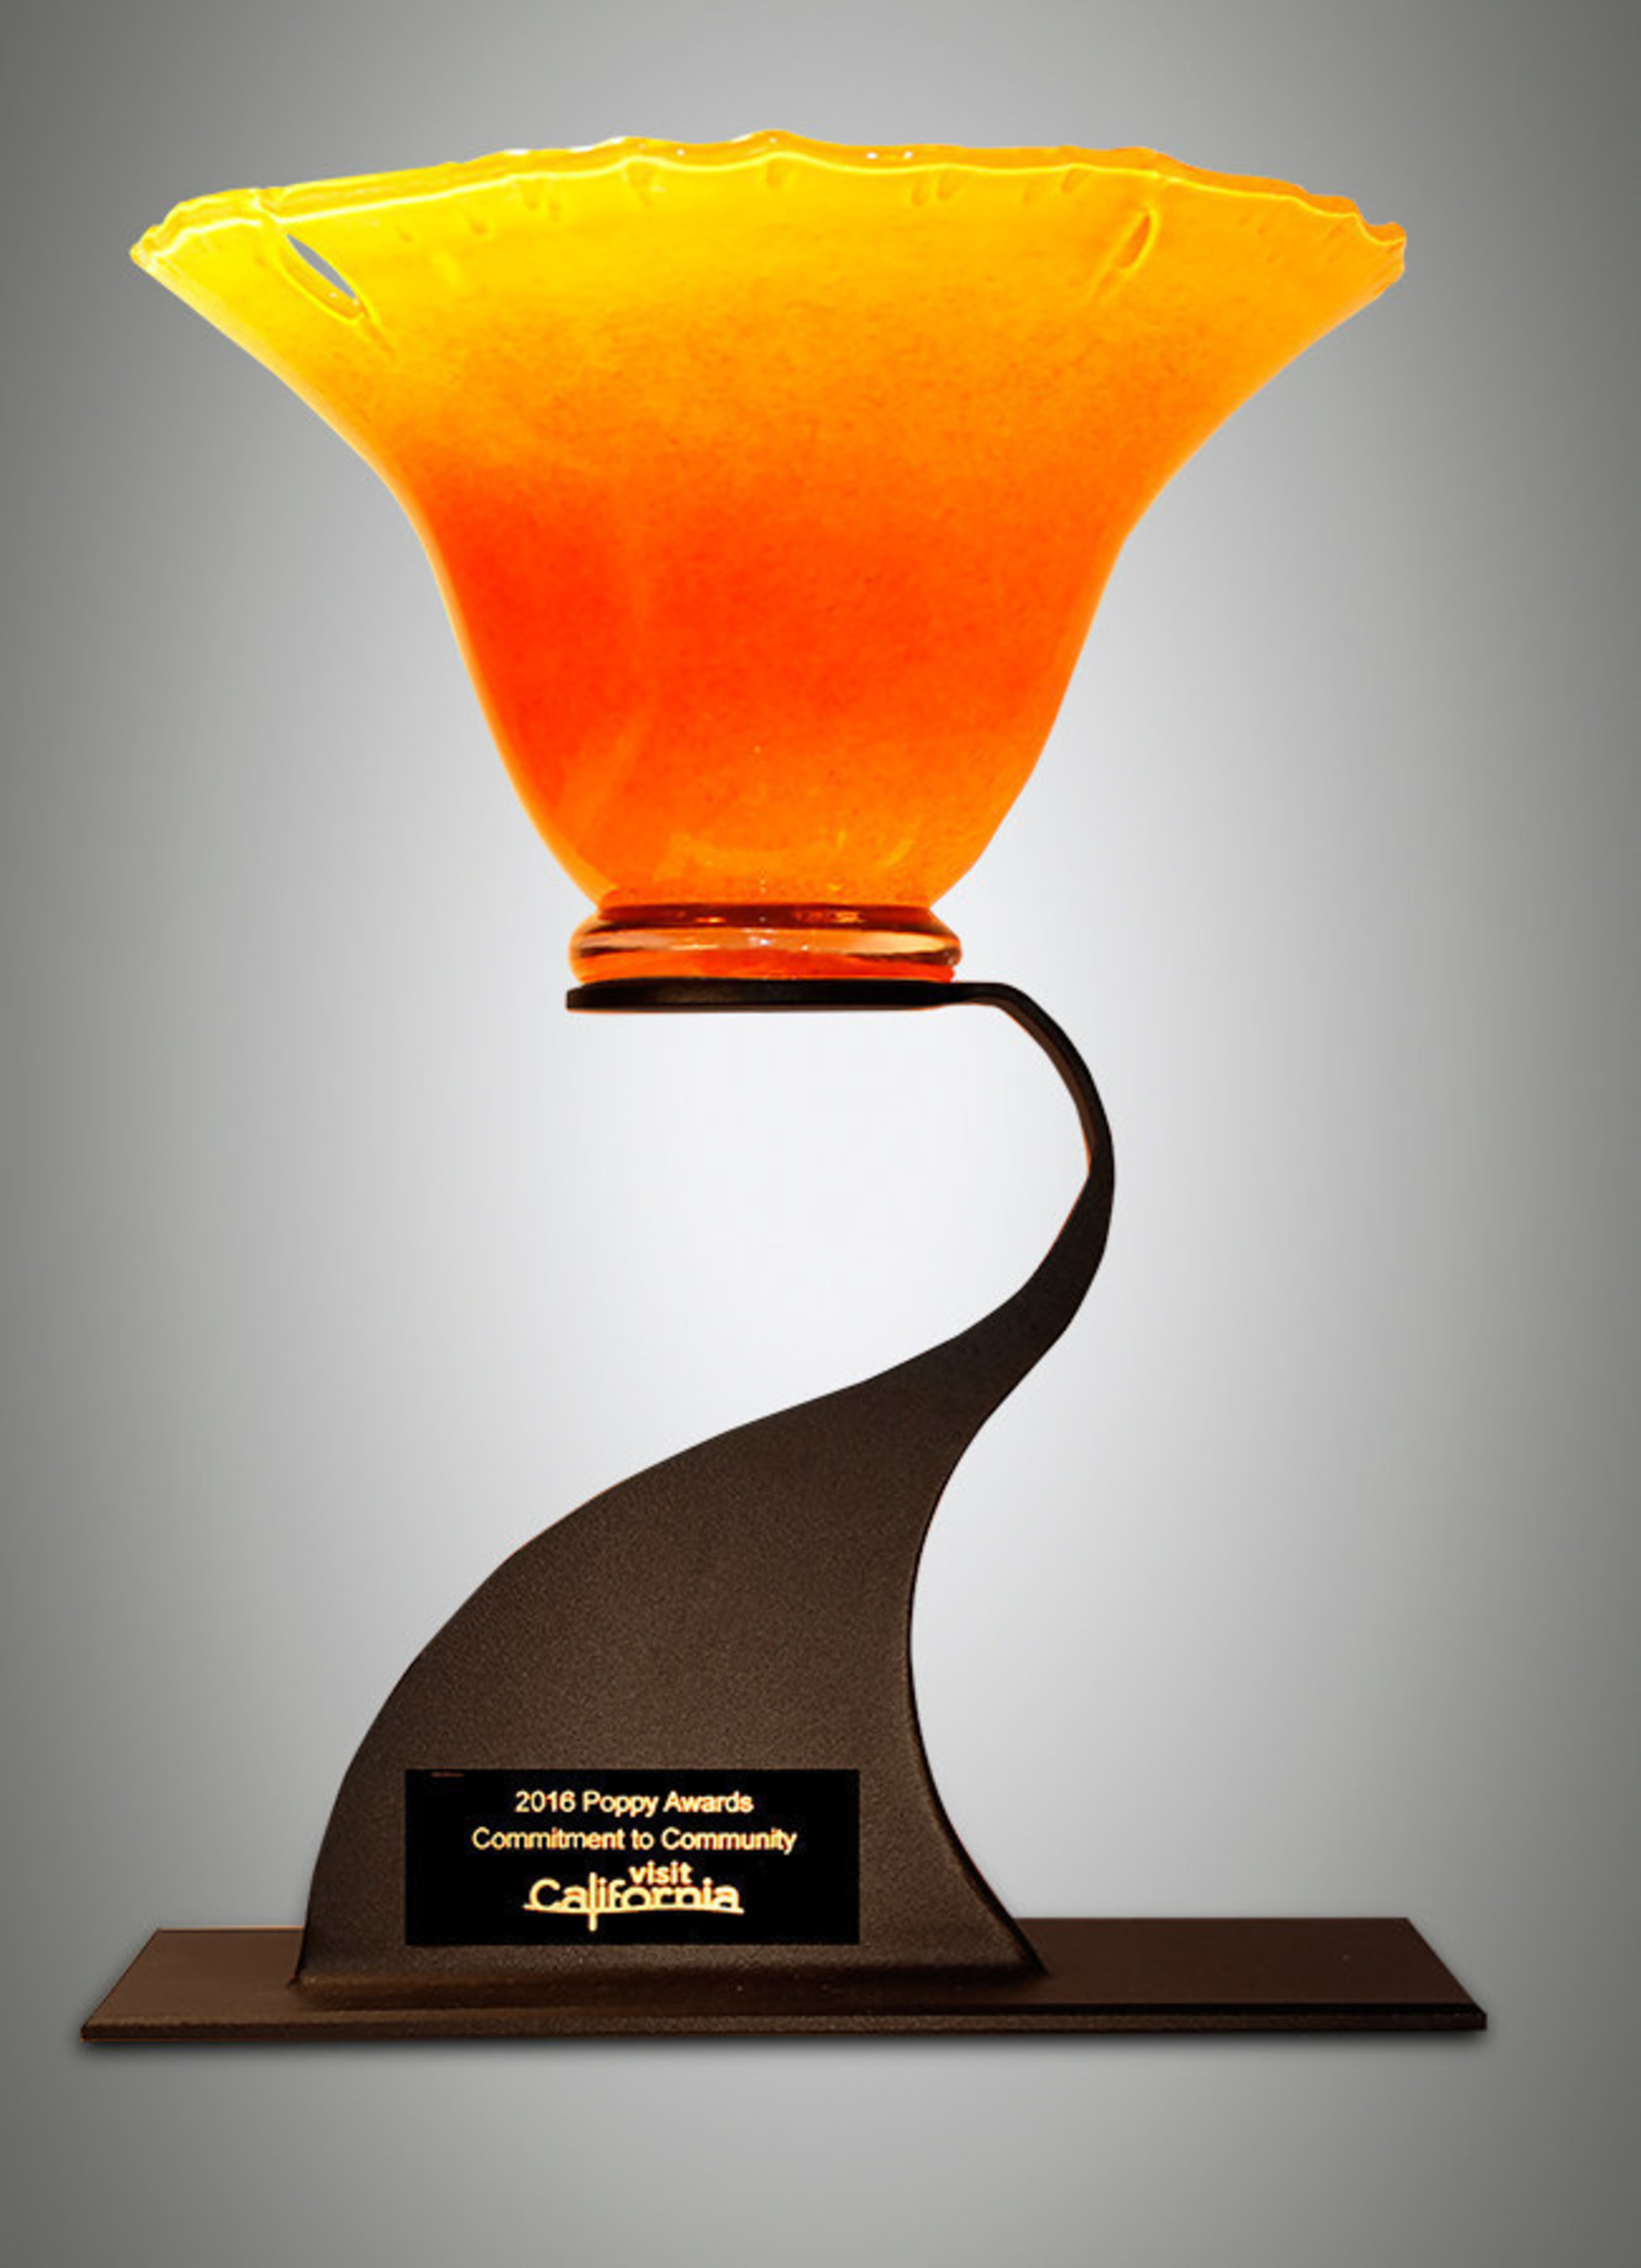 CA Highway 1 Discovery Route Awarded Prestigious Visit California Public Relations Poppy Award for